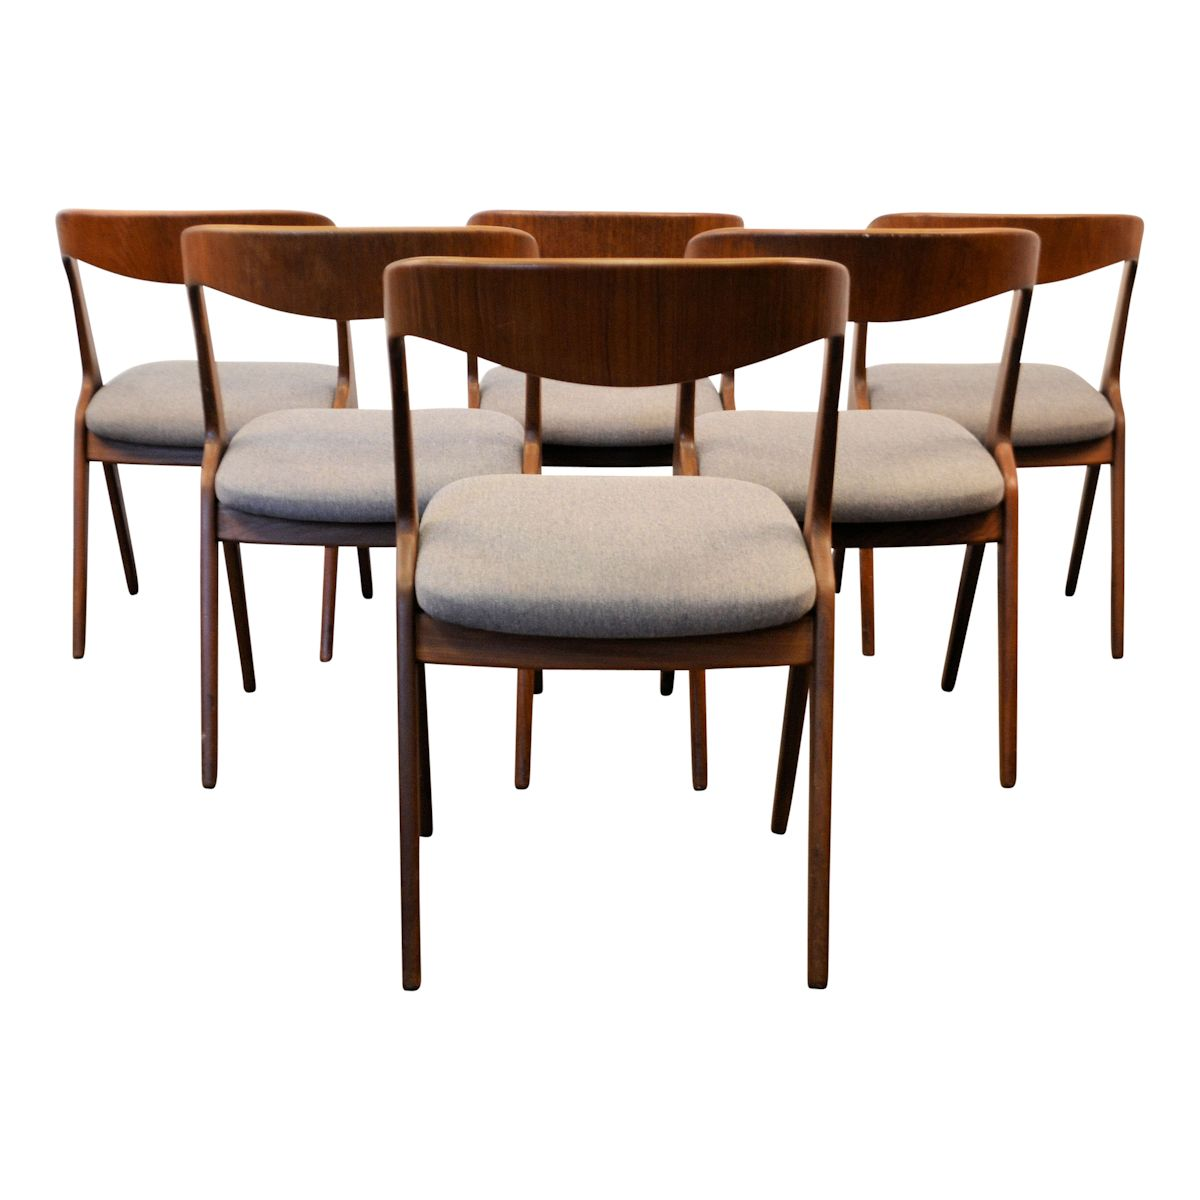 Danish Modern Erik Wørts Dining Chairs - back